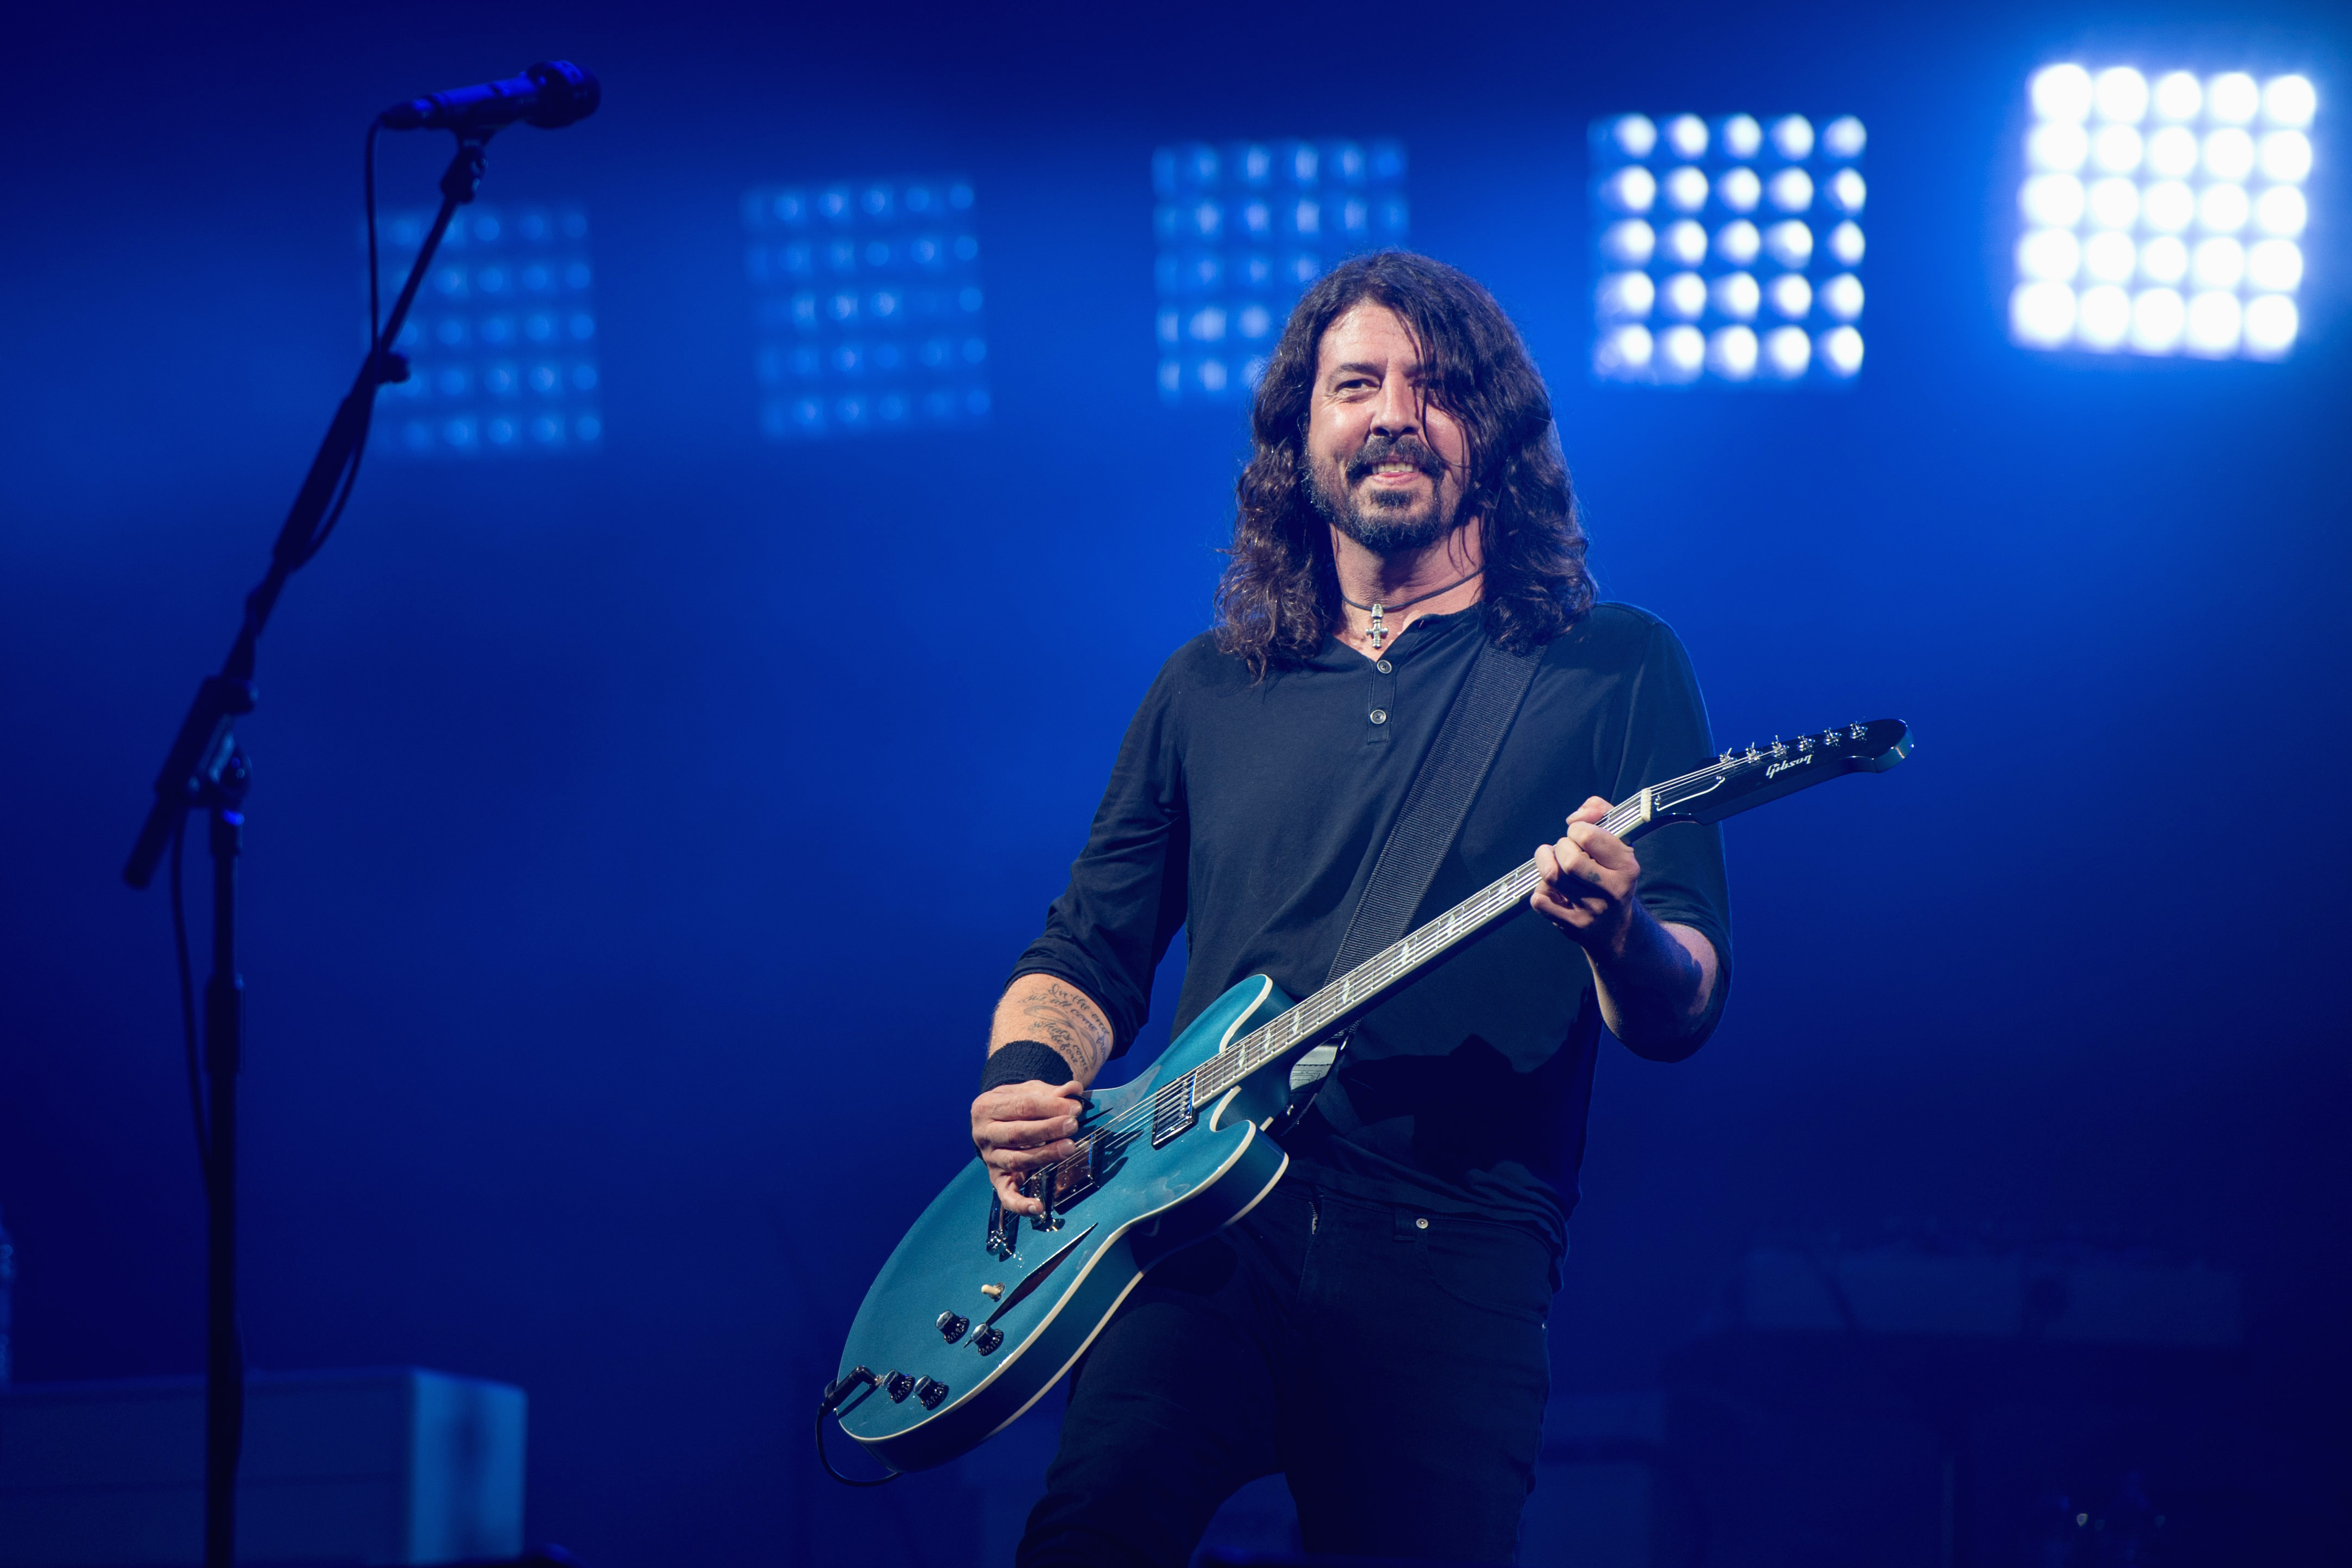 Dave Grohl Tells the Story Behind the Foo Fighters Classic 'Everlong' [VIDEO]